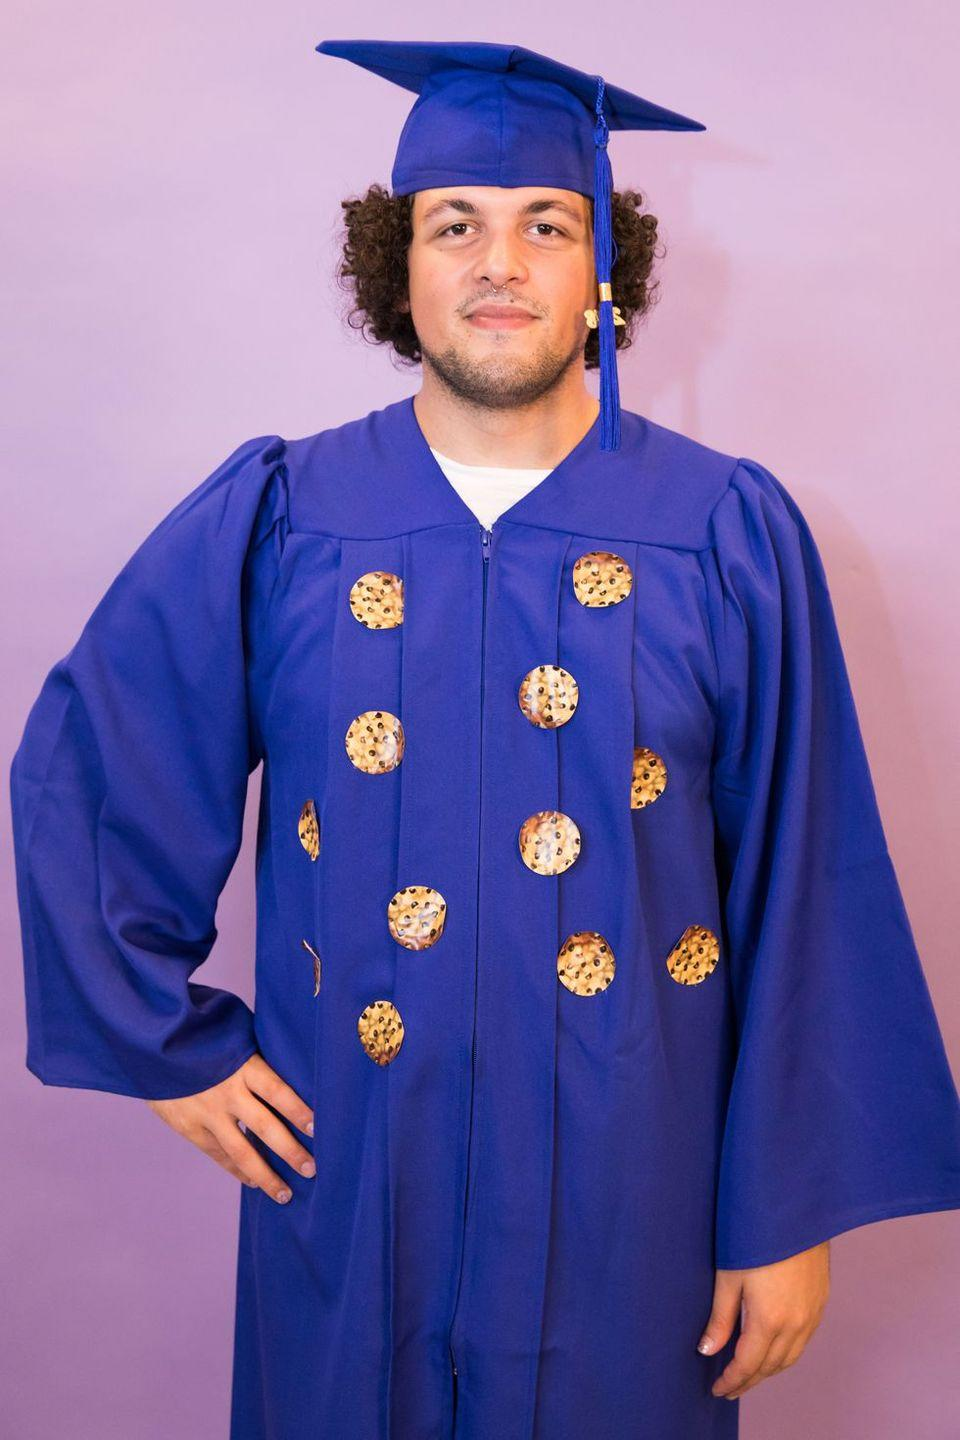 """<p>Got an old cap and gown hanging in your closet that you never thought you'd wear again? Think again! Your old regalia is a perfect jumping off point for this brainy costume.</p><p><strong>Get the tutorial at <a href=""""https://www.goodhousekeeping.com/holidays/halloween-ideas/g2750/easy-last-minute-halloween-costumes-diy/?slide=26"""" rel=""""nofollow noopener"""" target=""""_blank"""" data-ylk=""""slk:Good Housekeeping"""" class=""""link rapid-noclick-resp"""">Good Housekeeping</a>.</strong></p><p><strong><strong><strong>What You'll Need:</strong></strong> </strong><a href=""""https://www.amazon.com/GraduationForYou-Matte-Graduation-Tassel-45inFF/dp/B01M03XKSY/"""" rel=""""nofollow noopener"""" target=""""_blank"""" data-ylk=""""slk:Cap and gown"""" class=""""link rapid-noclick-resp"""">Cap and gown</a> (from $16, Amazon)</p>"""